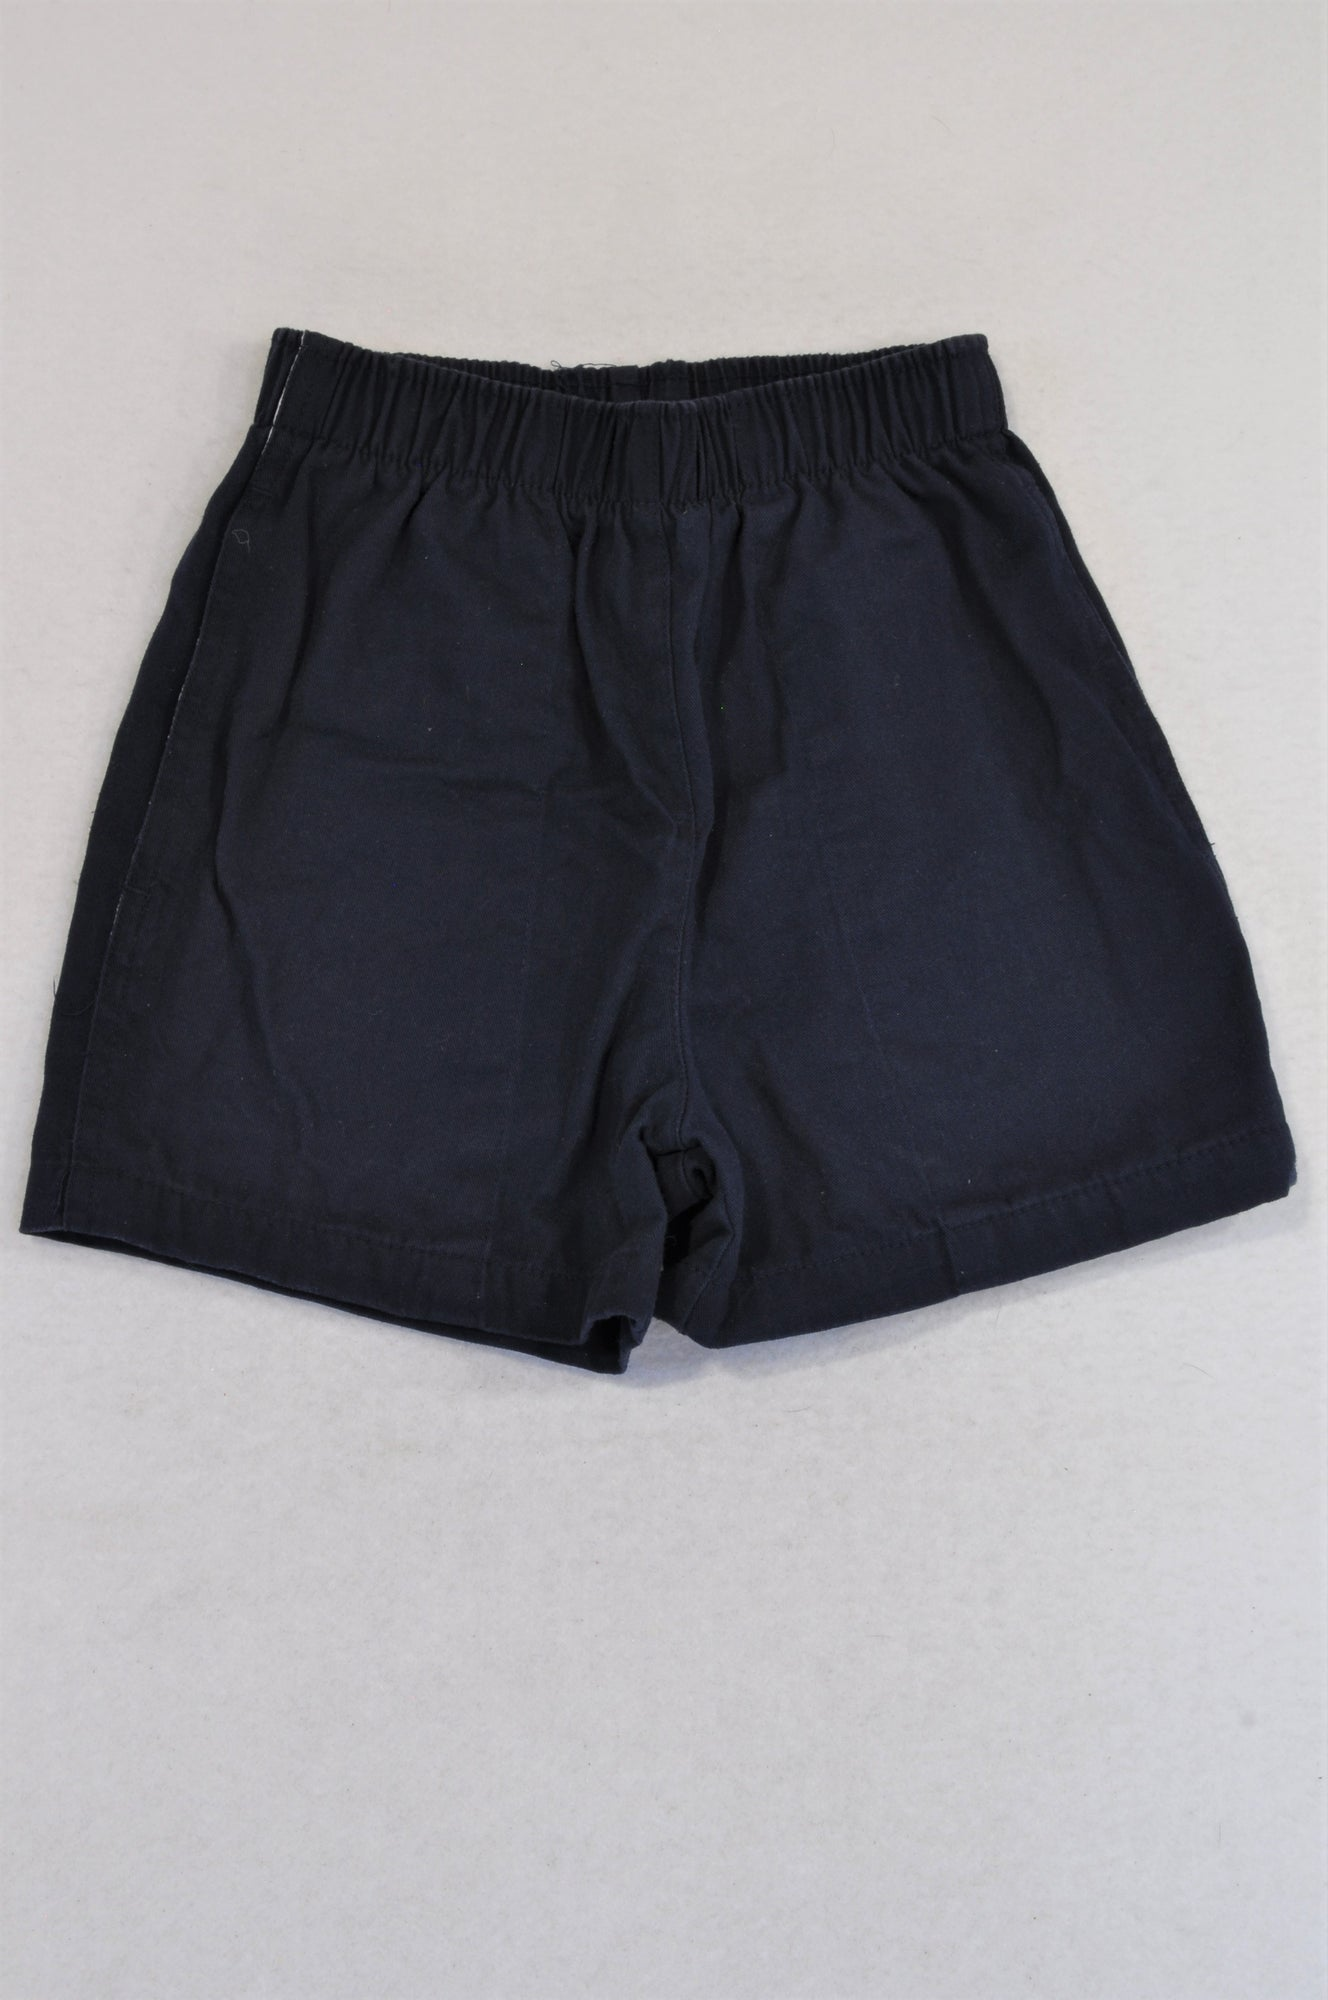 Woolworths Dark Navy Sports Shorts Boys 10-11 years